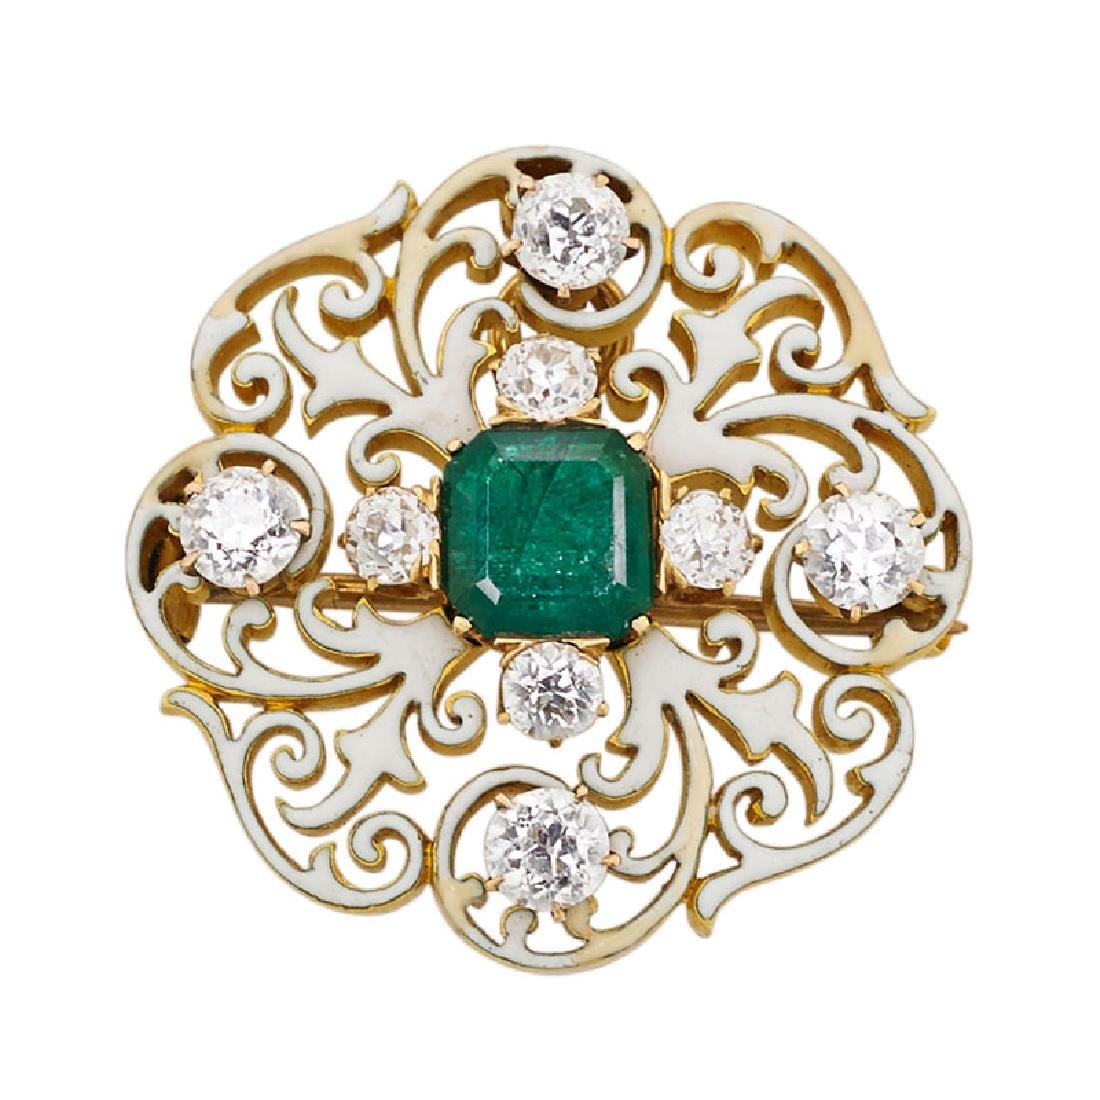 ANTIQUE EMERALD, WHITE ENAMELED GOLD PENDANT BROOCH